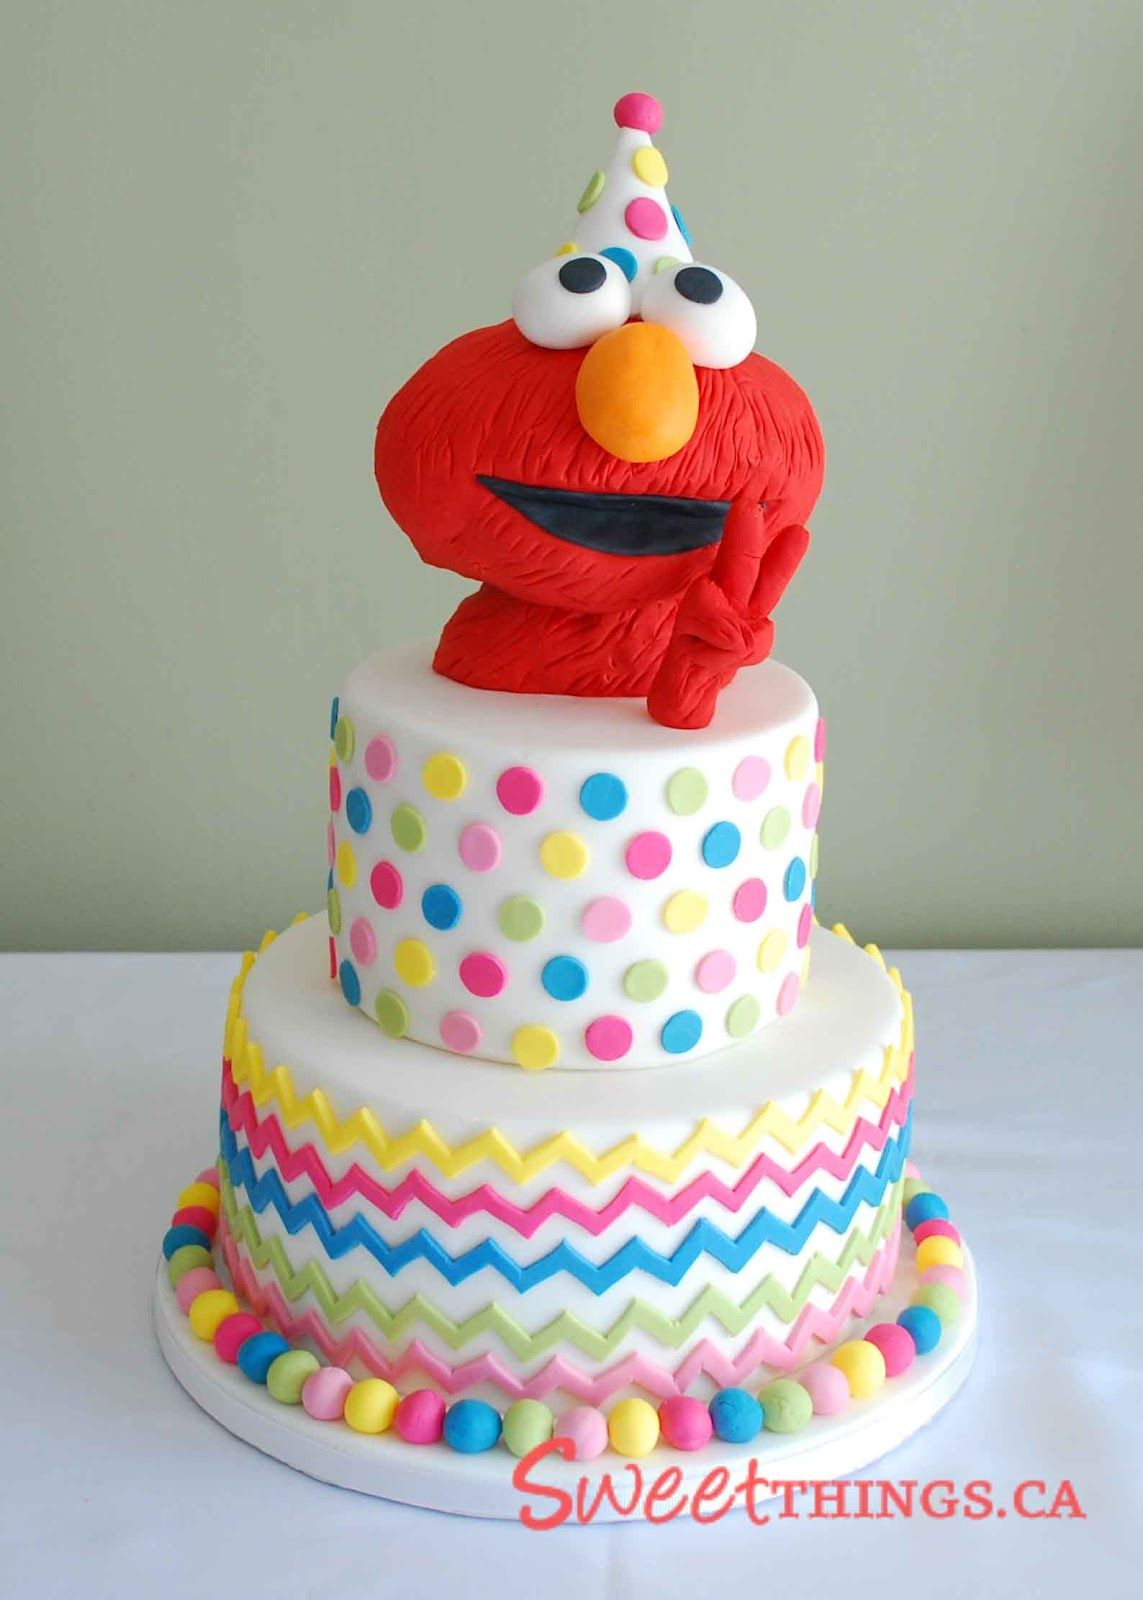 elmo birthday cakes for girls The bottom tier of the cake was